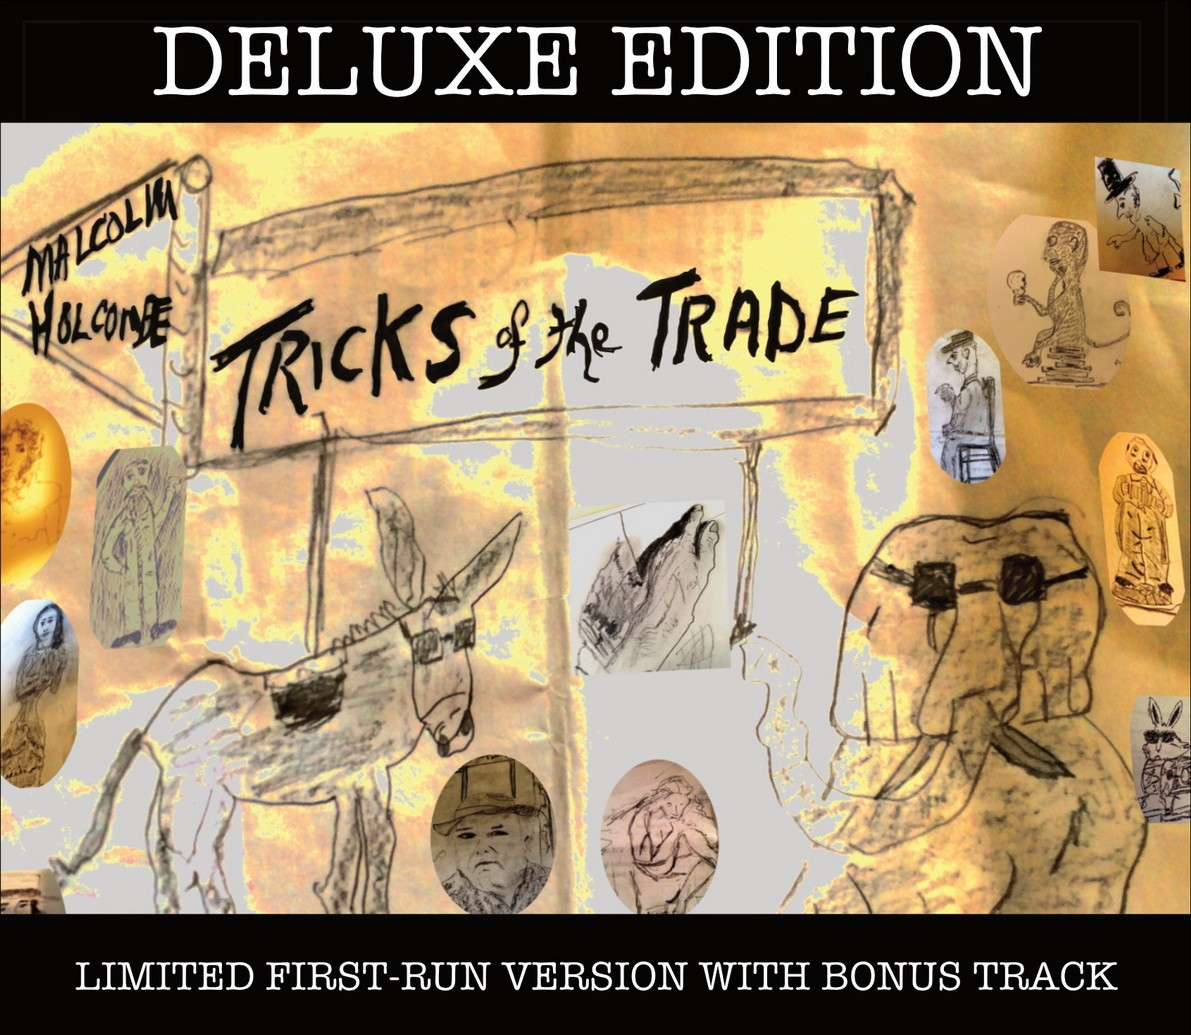 Malcolm Holcombe - Tricks of the Trade